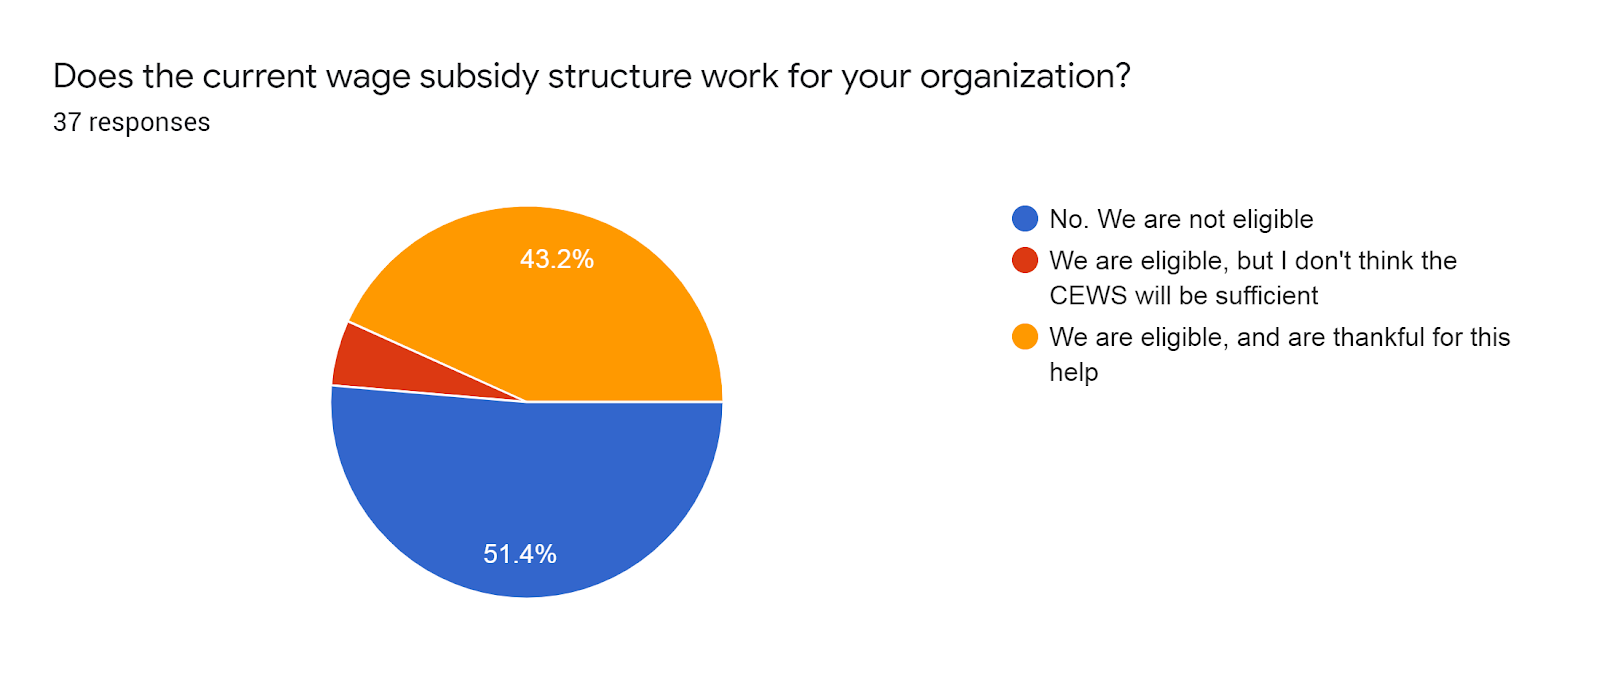 Forms response chart. Question title: Does the current wage subsidy structure work for your organization?. Number of responses: 37 responses.